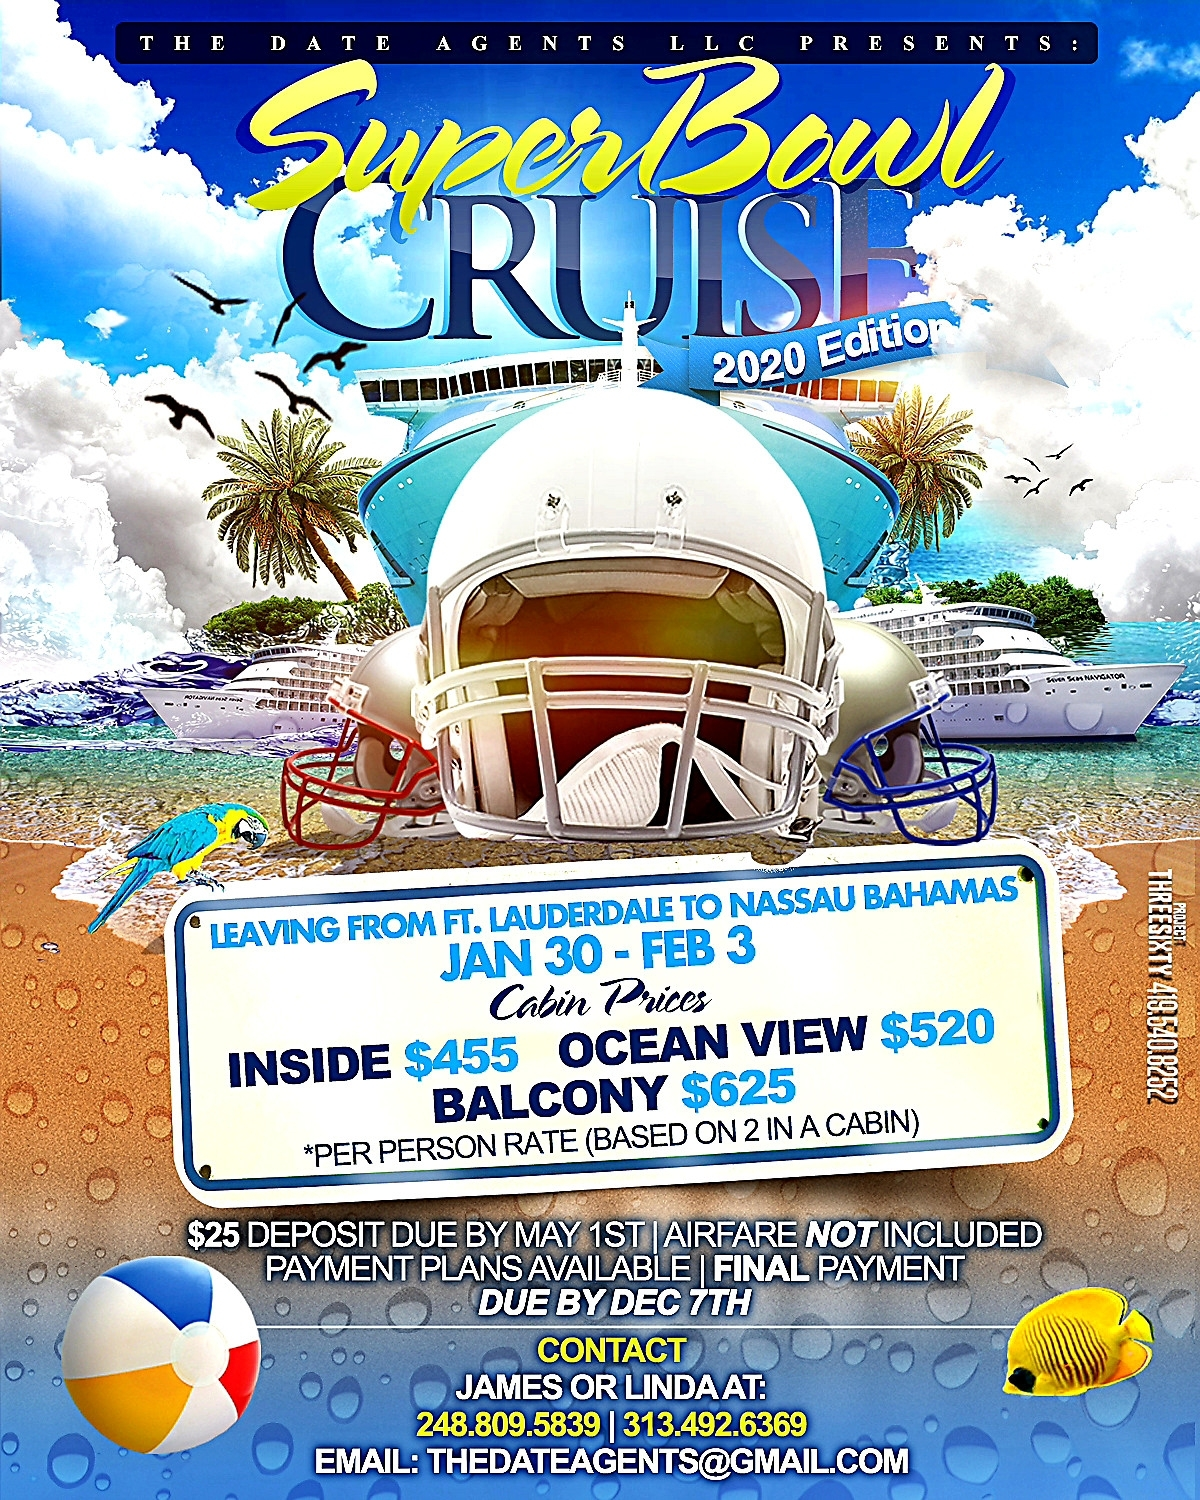 The Date Agents Superbowl Cruise 2020 - 30 Jan 2020 within Miami Super Bowl Cruise